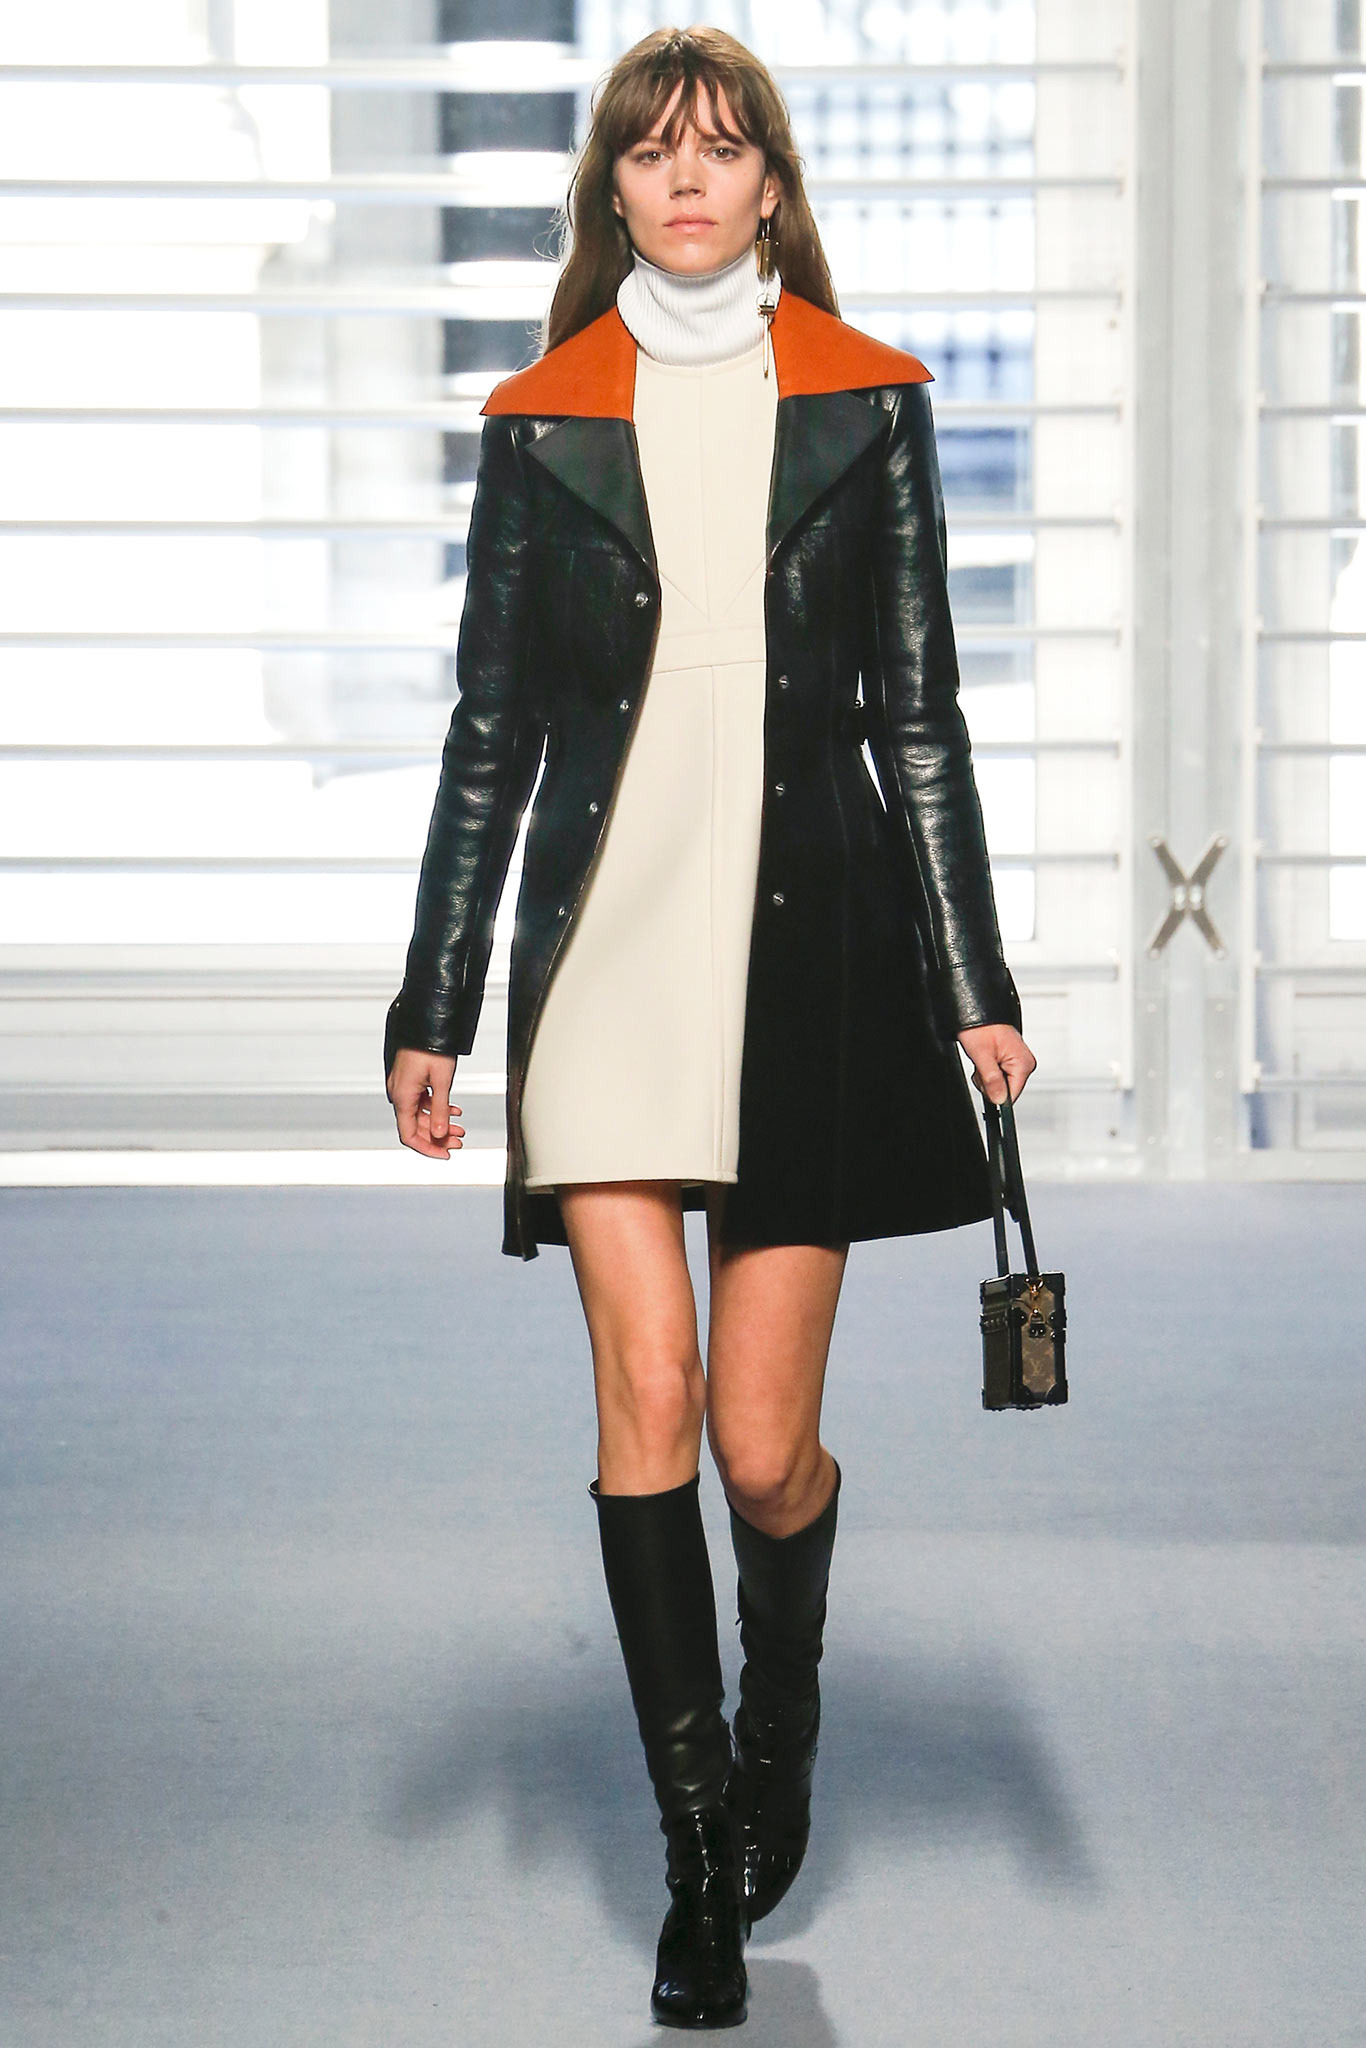 Louis-Vuitton-Fall-Winter-2014-2015-Wardrobe-Looks-For-Women-1